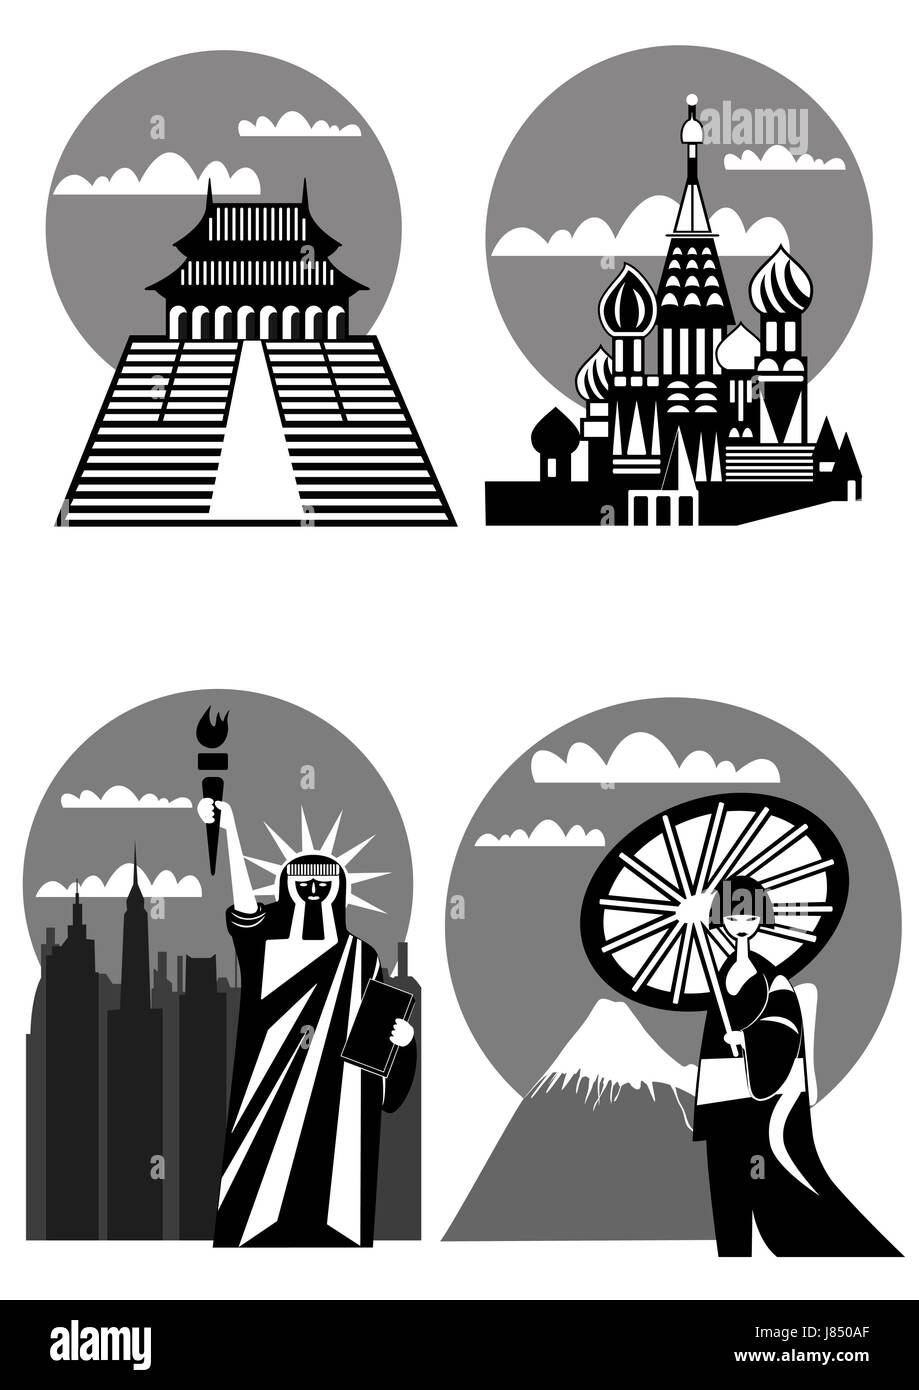 usa japan statue of liberty sign logo new york moscow house building tower - Stock Image